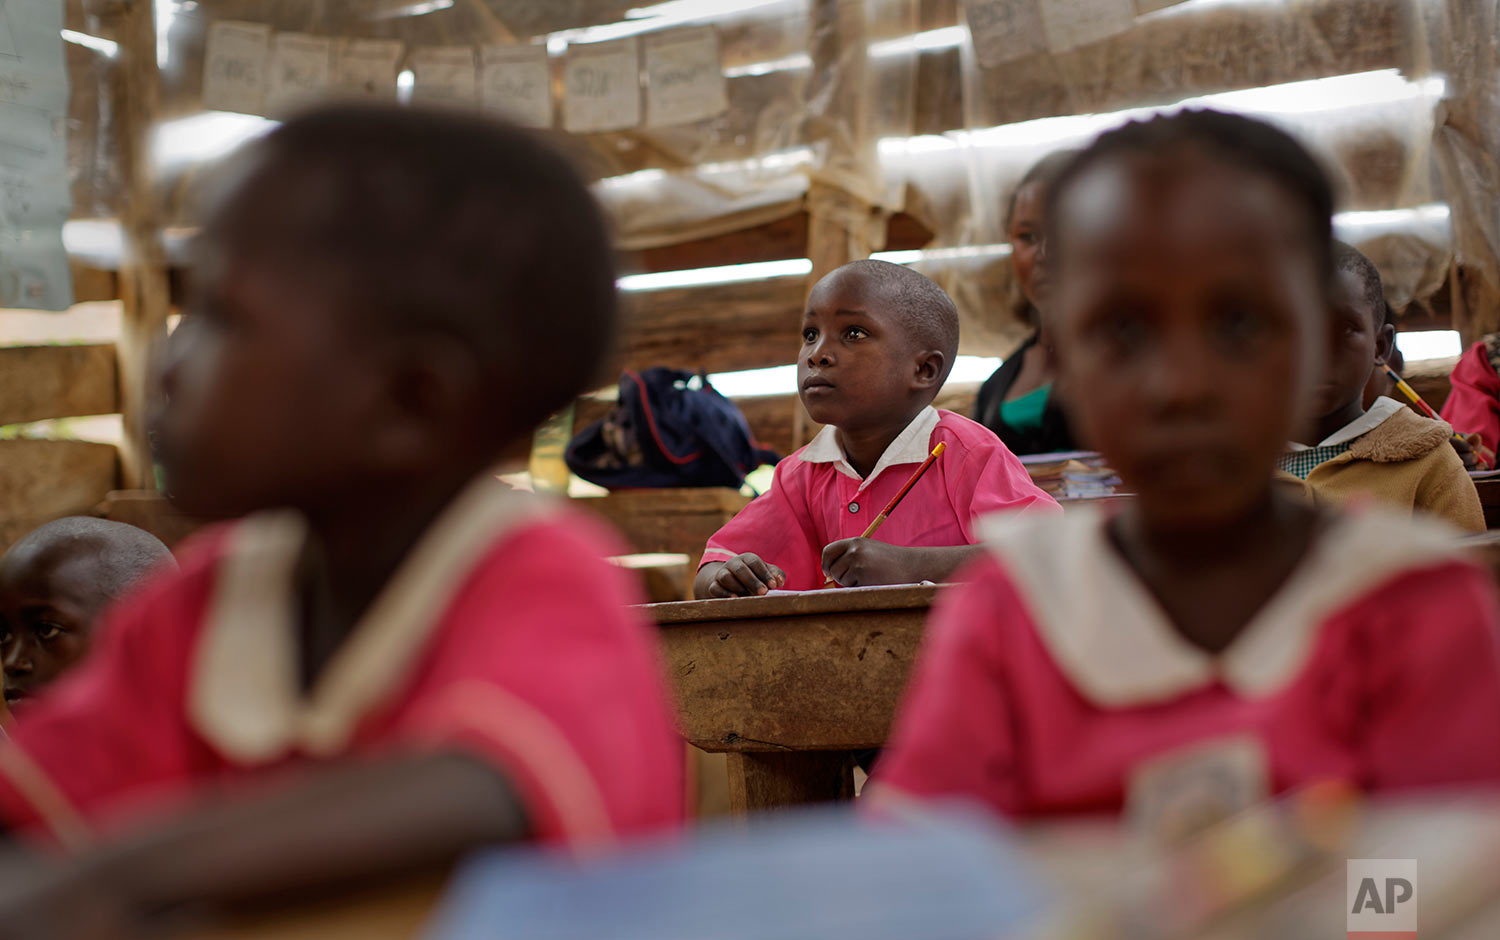 In this Thursday, June 1, 2017 photo, Abdu Kabanda, 6, center, who is HIV-positive and is able to receive treatment from a support group because he is able to show a birth certificate to prove his age, sits in his class at the Jovia nursery and primary school in Kyanangazi village, Uganda. (AP Photo/Ben Curtis)